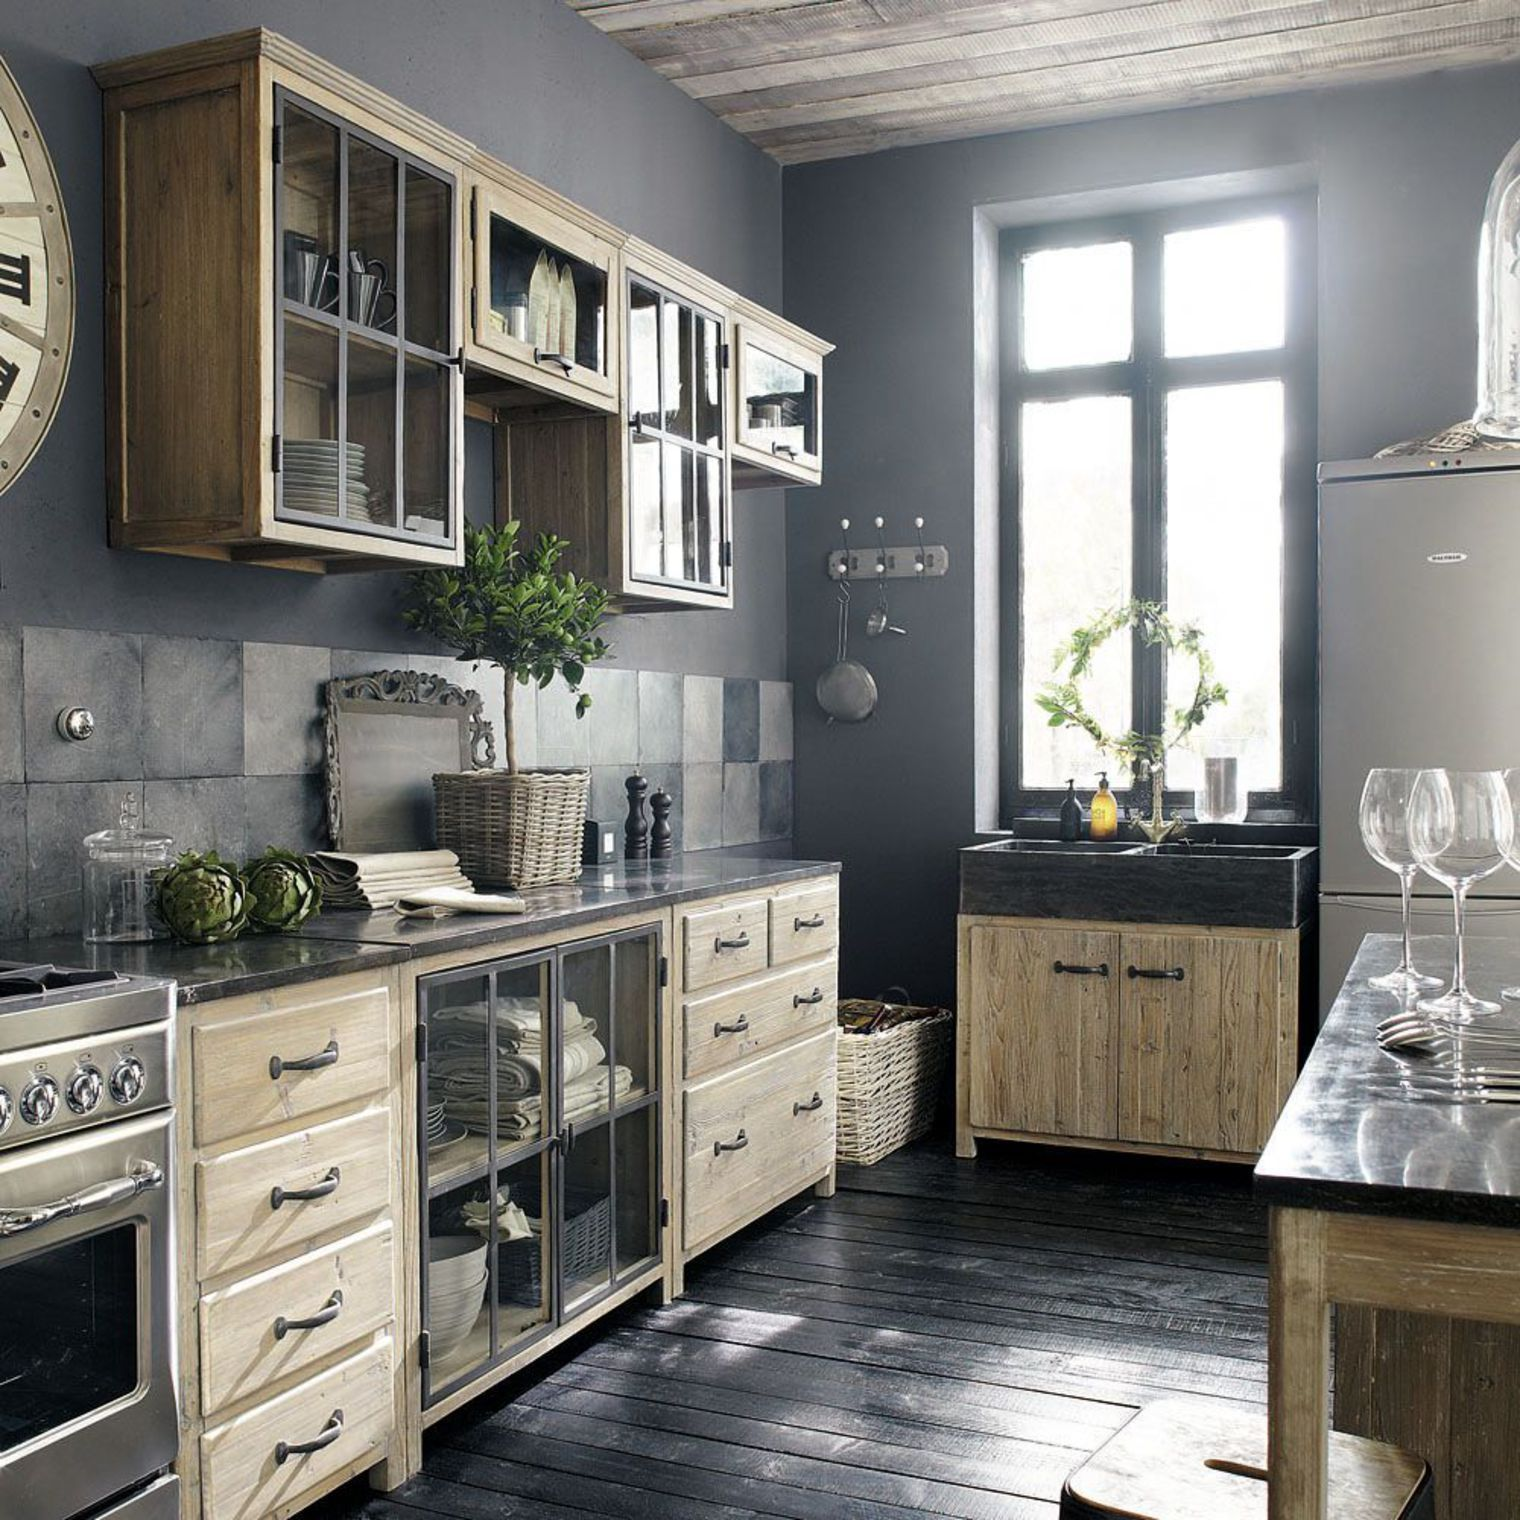 A Rustic Country Industrial Kitchen